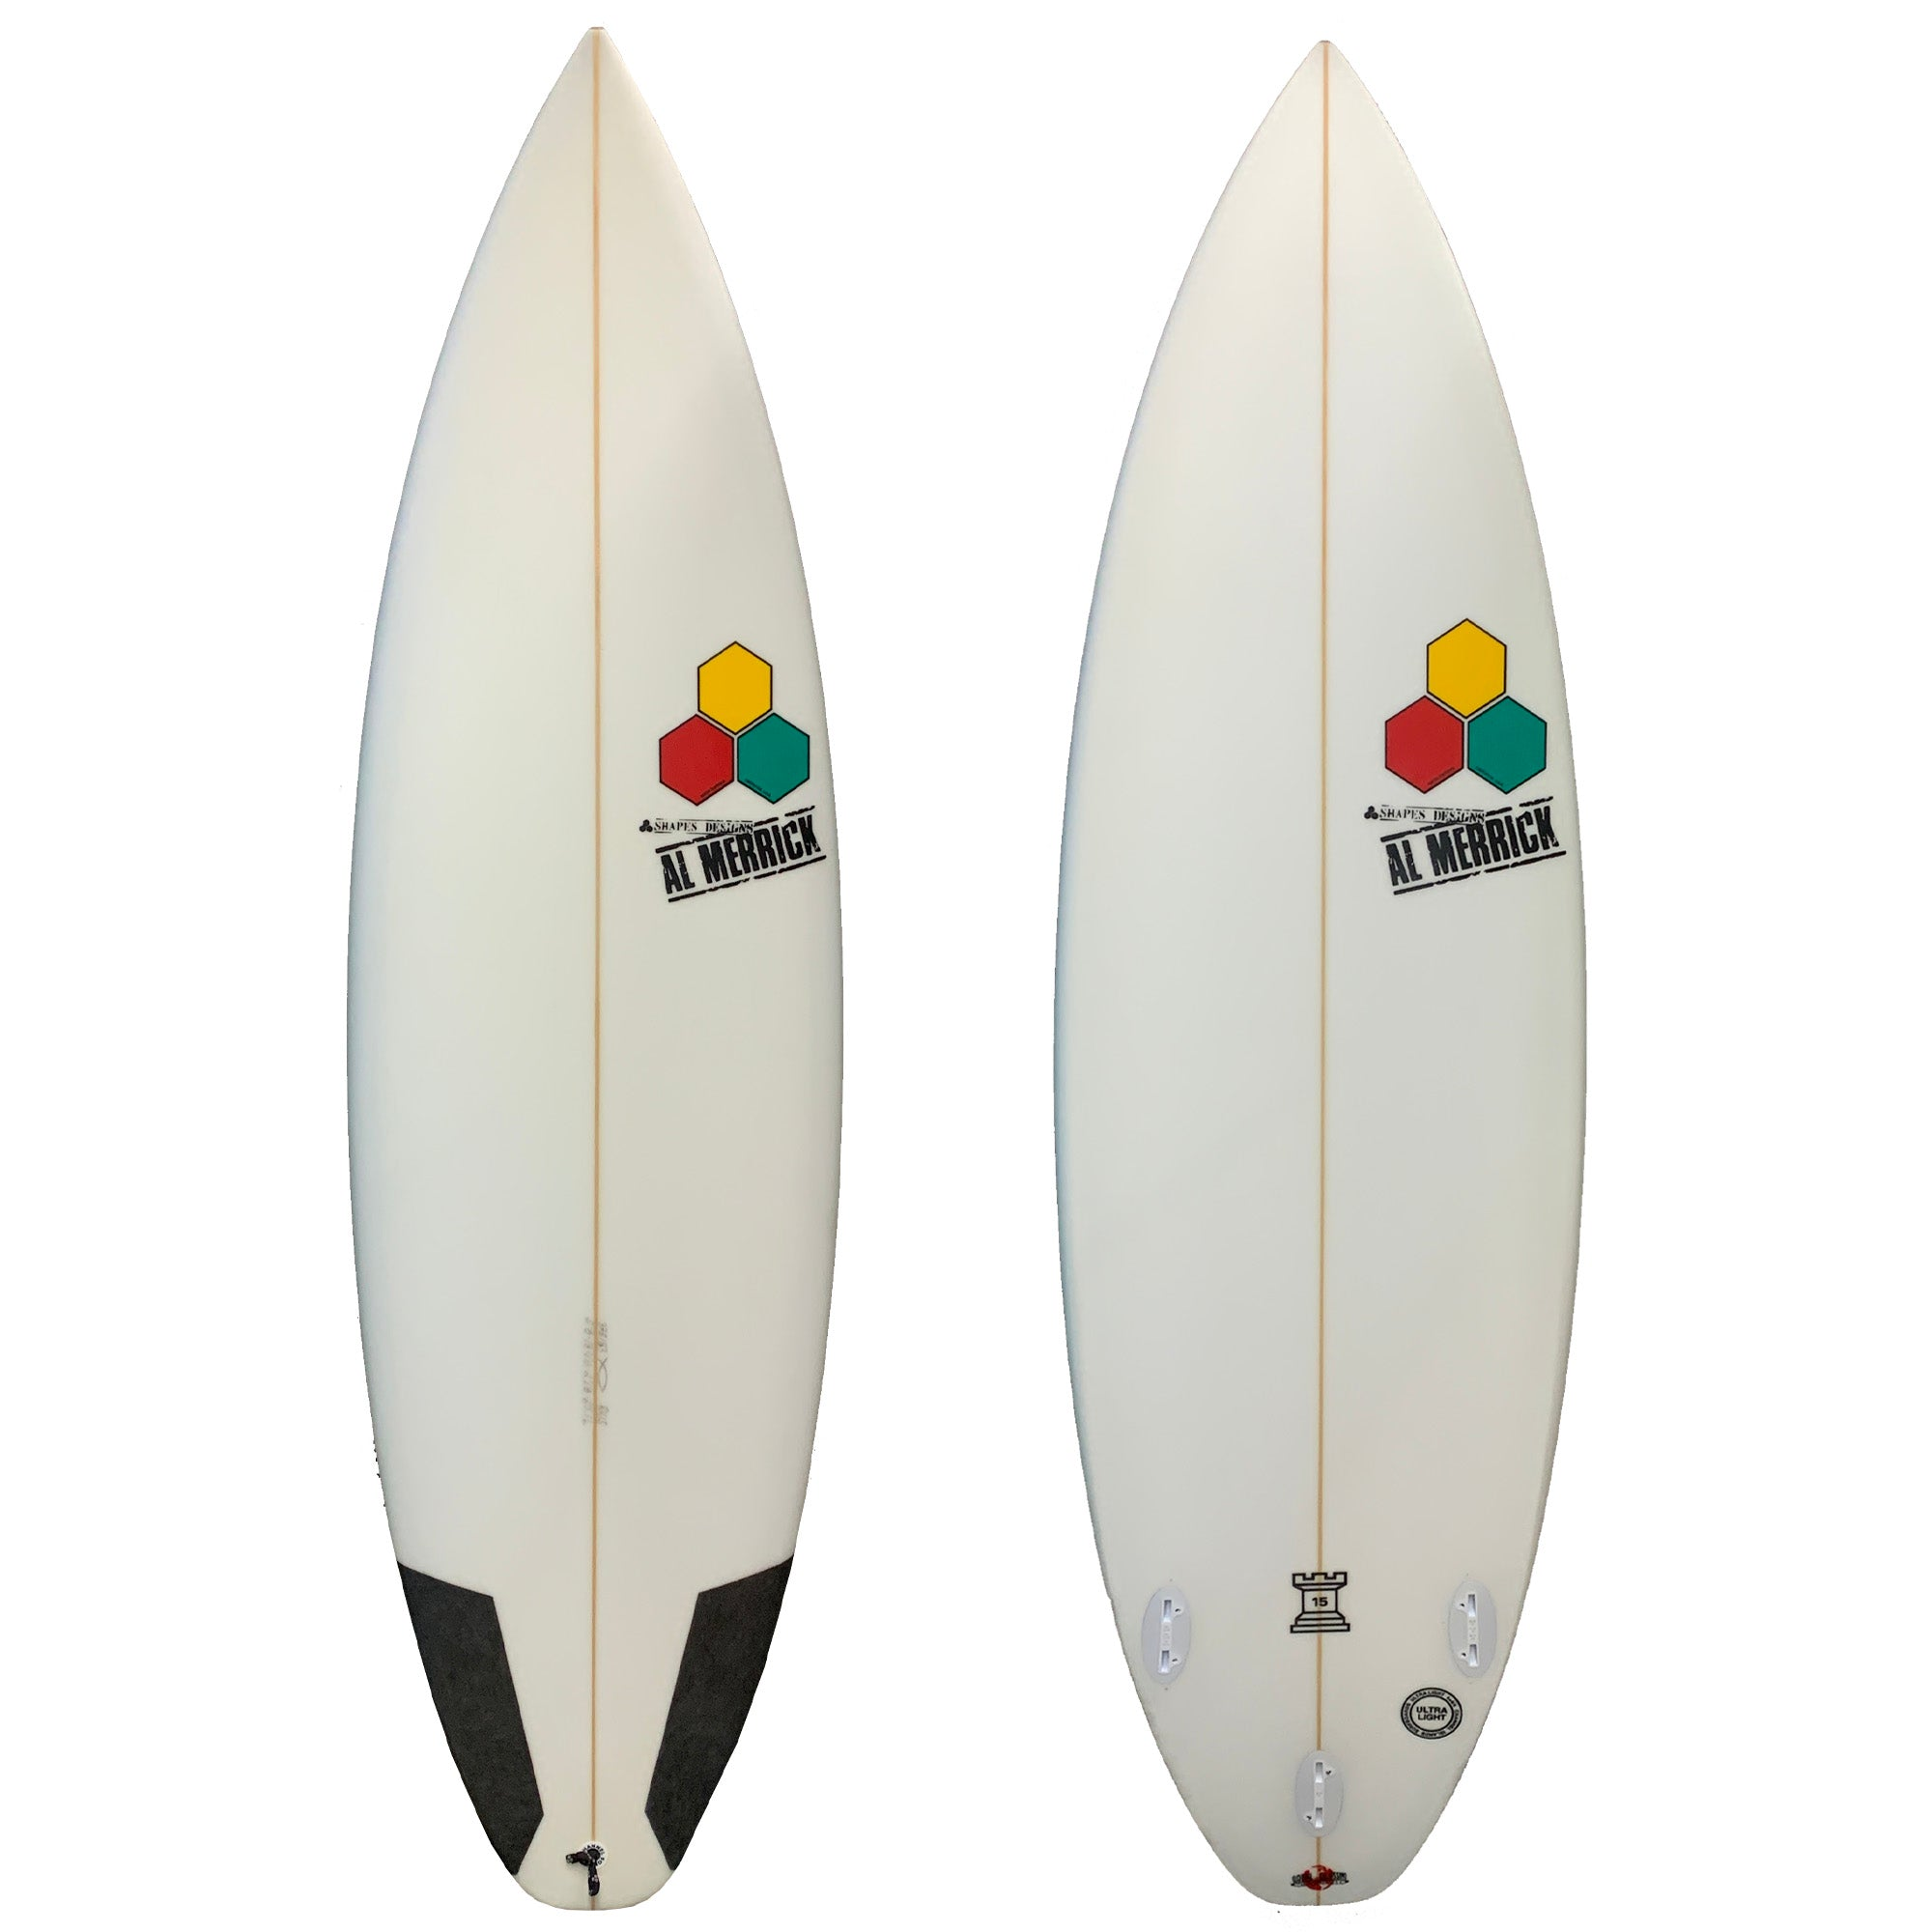 Channel Islands Rookie 15 Surfboard - FCS